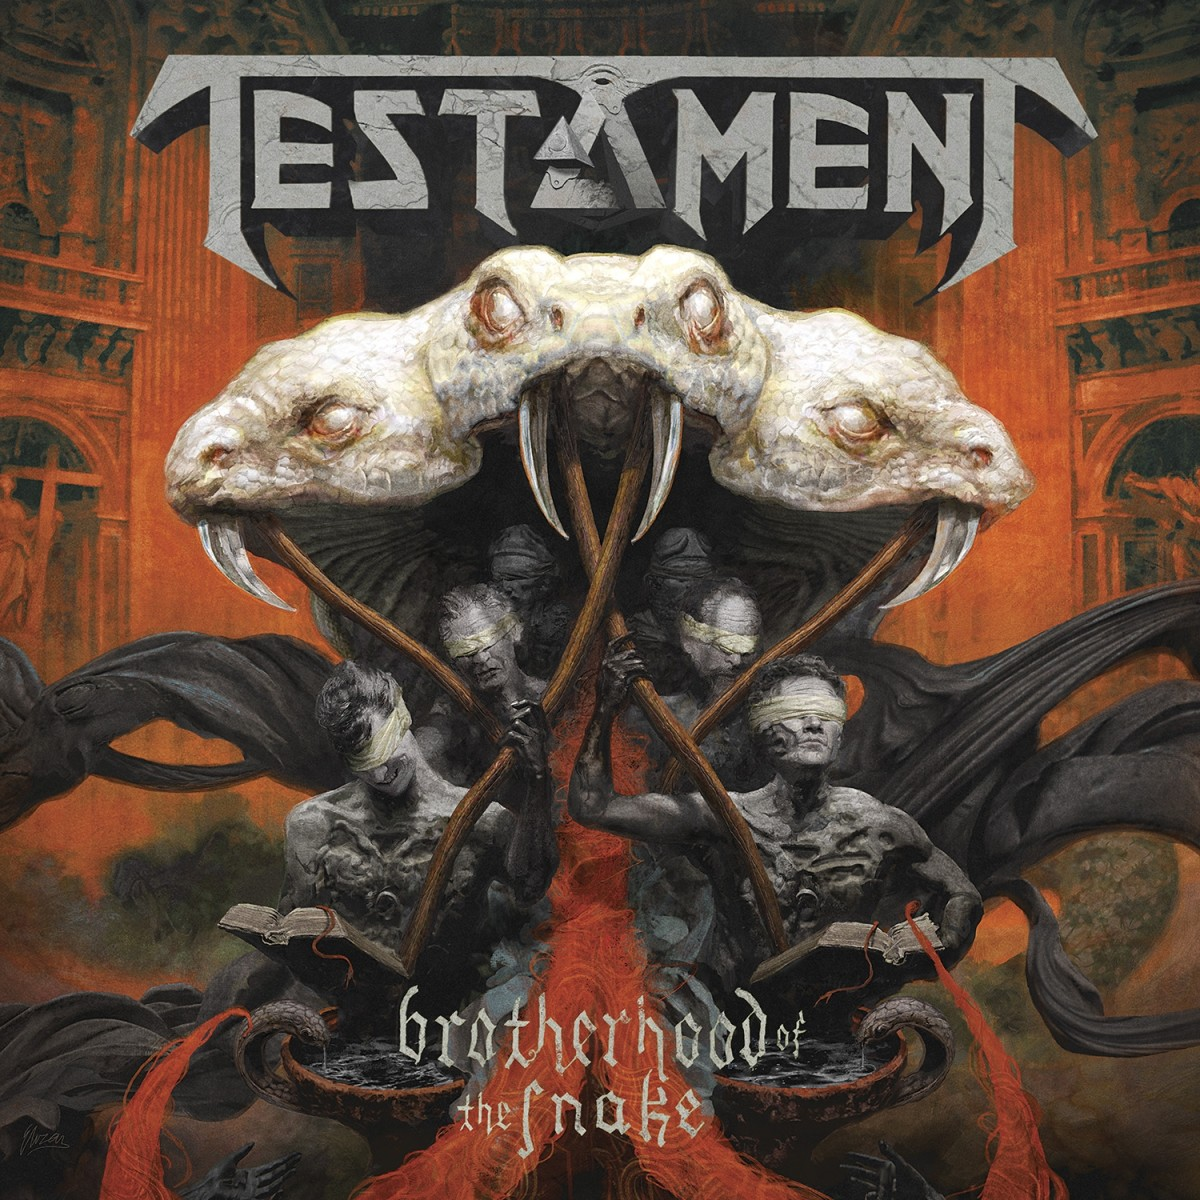 Album Review: Testament 'Brotherhood of the Snake'